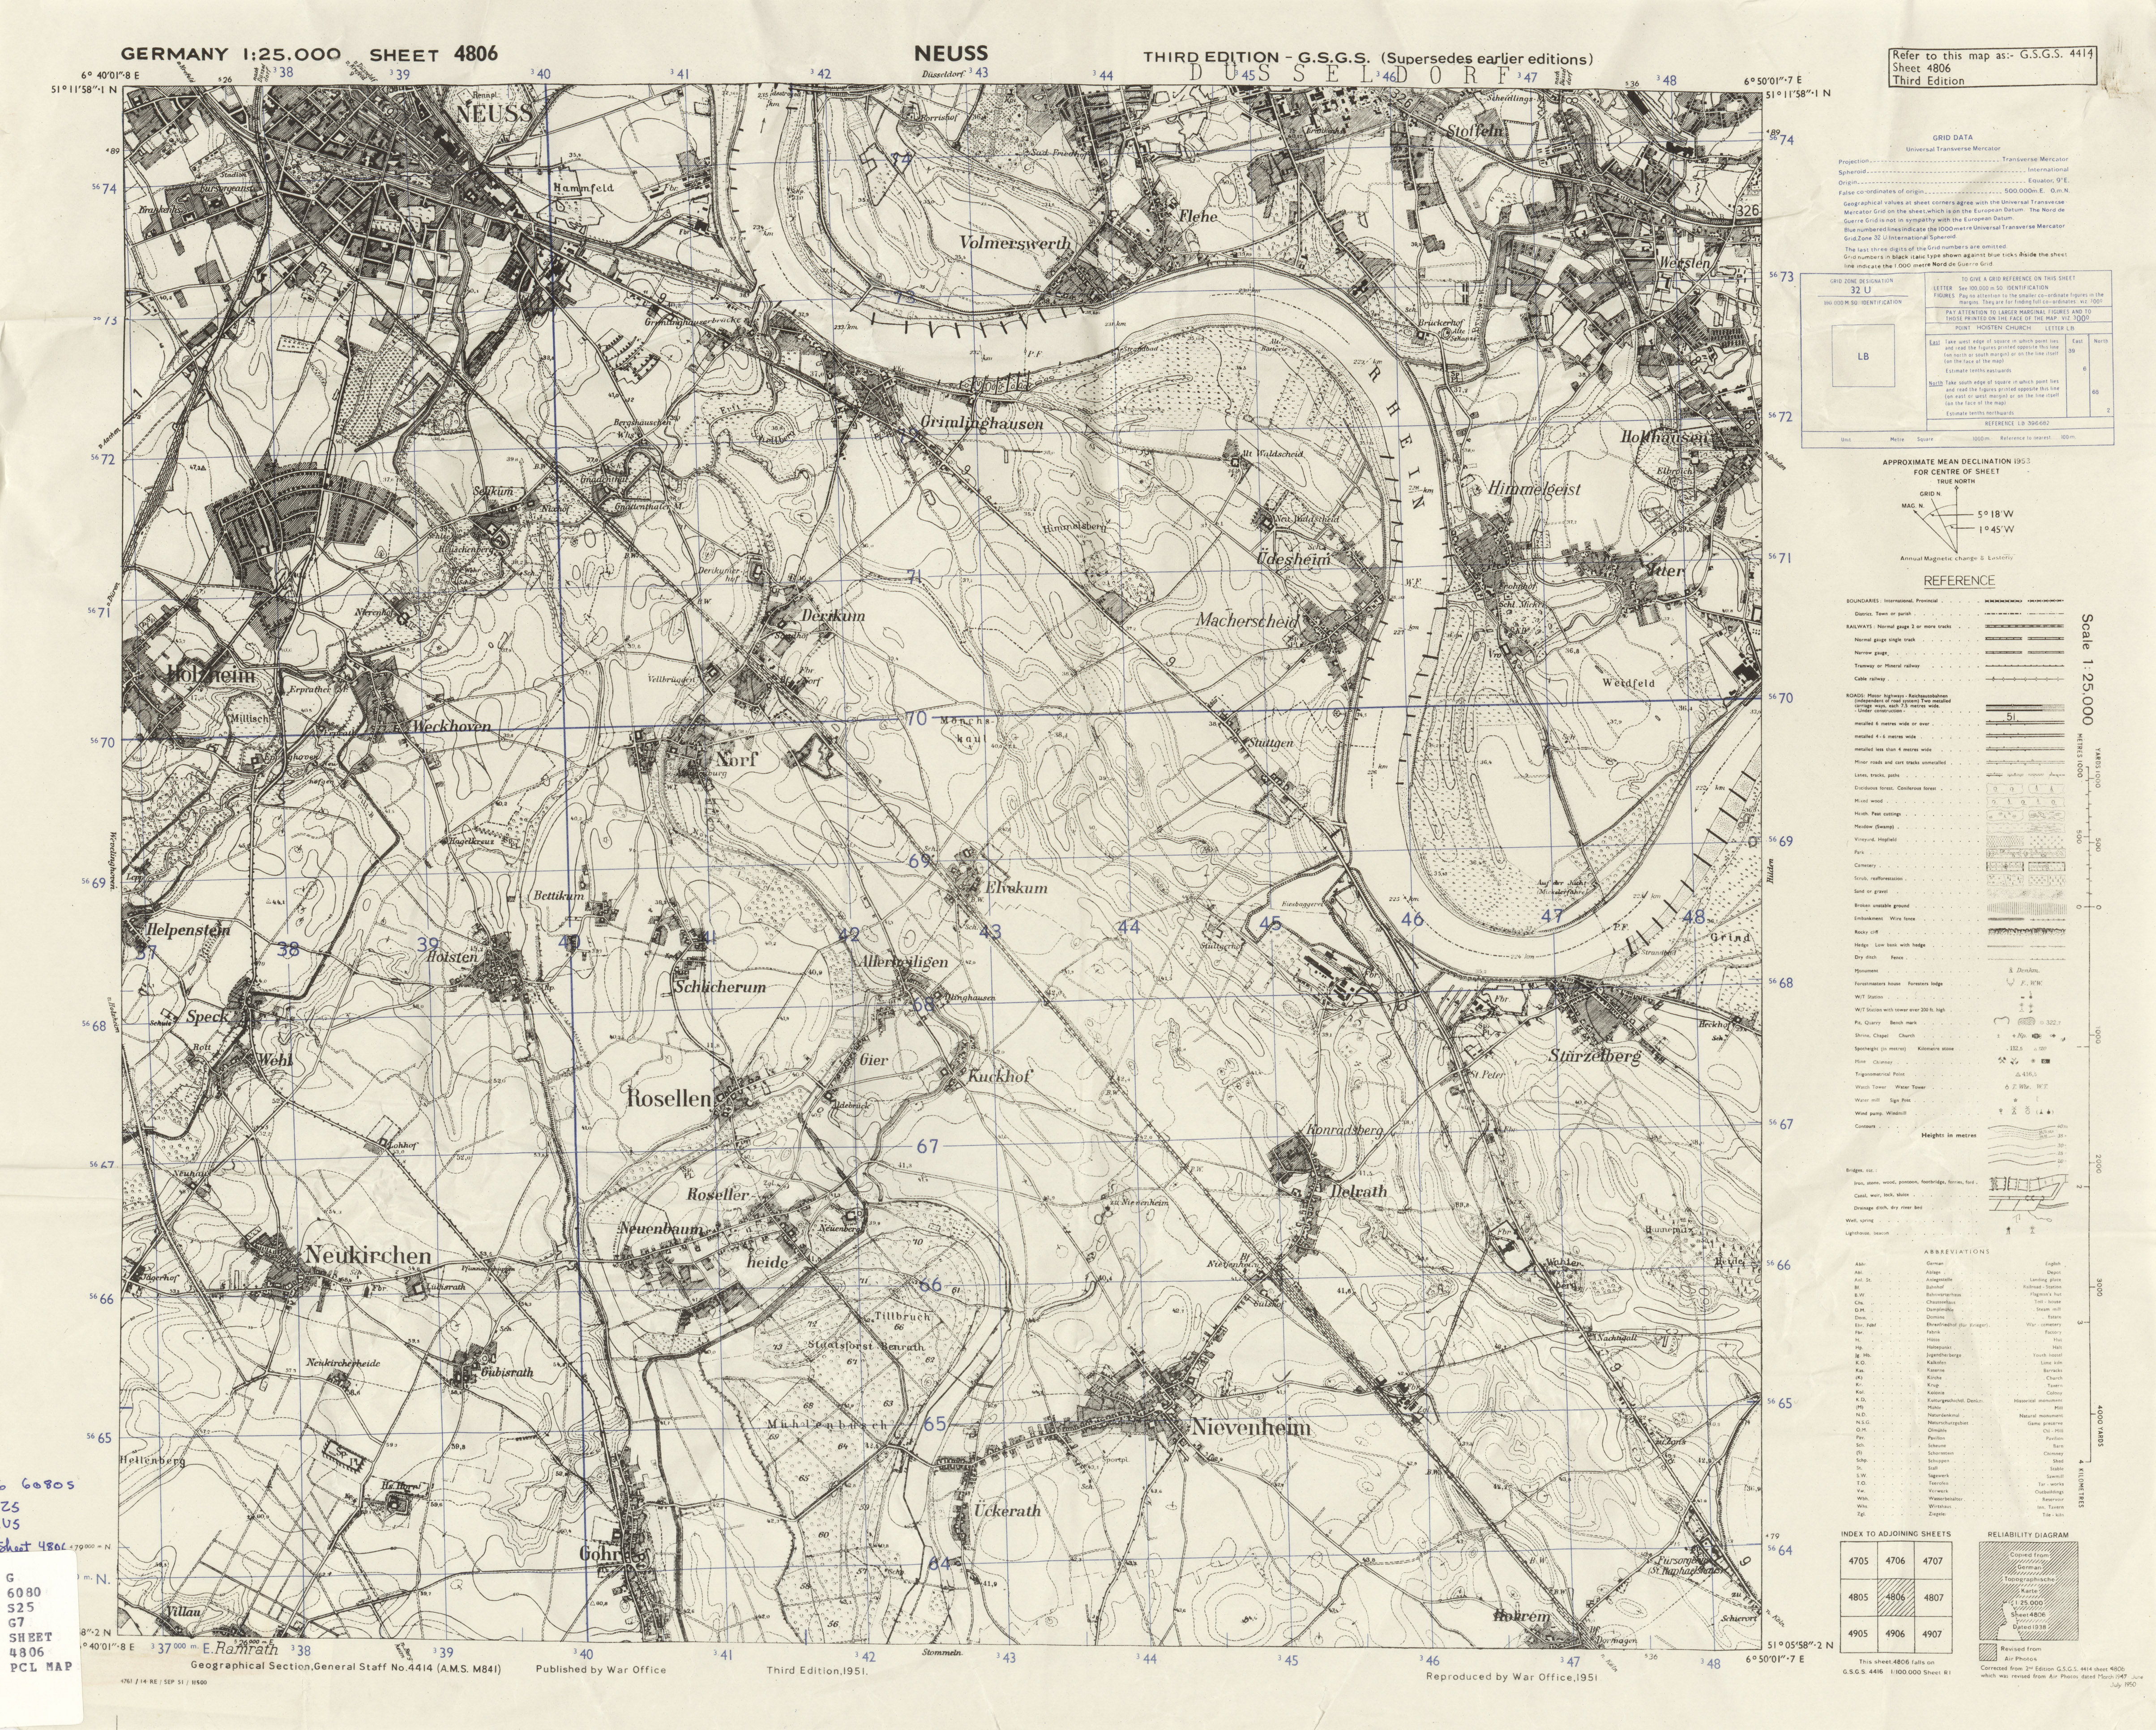 Germany AMS Topographic Maps PerryCastaeda Map Collection UT